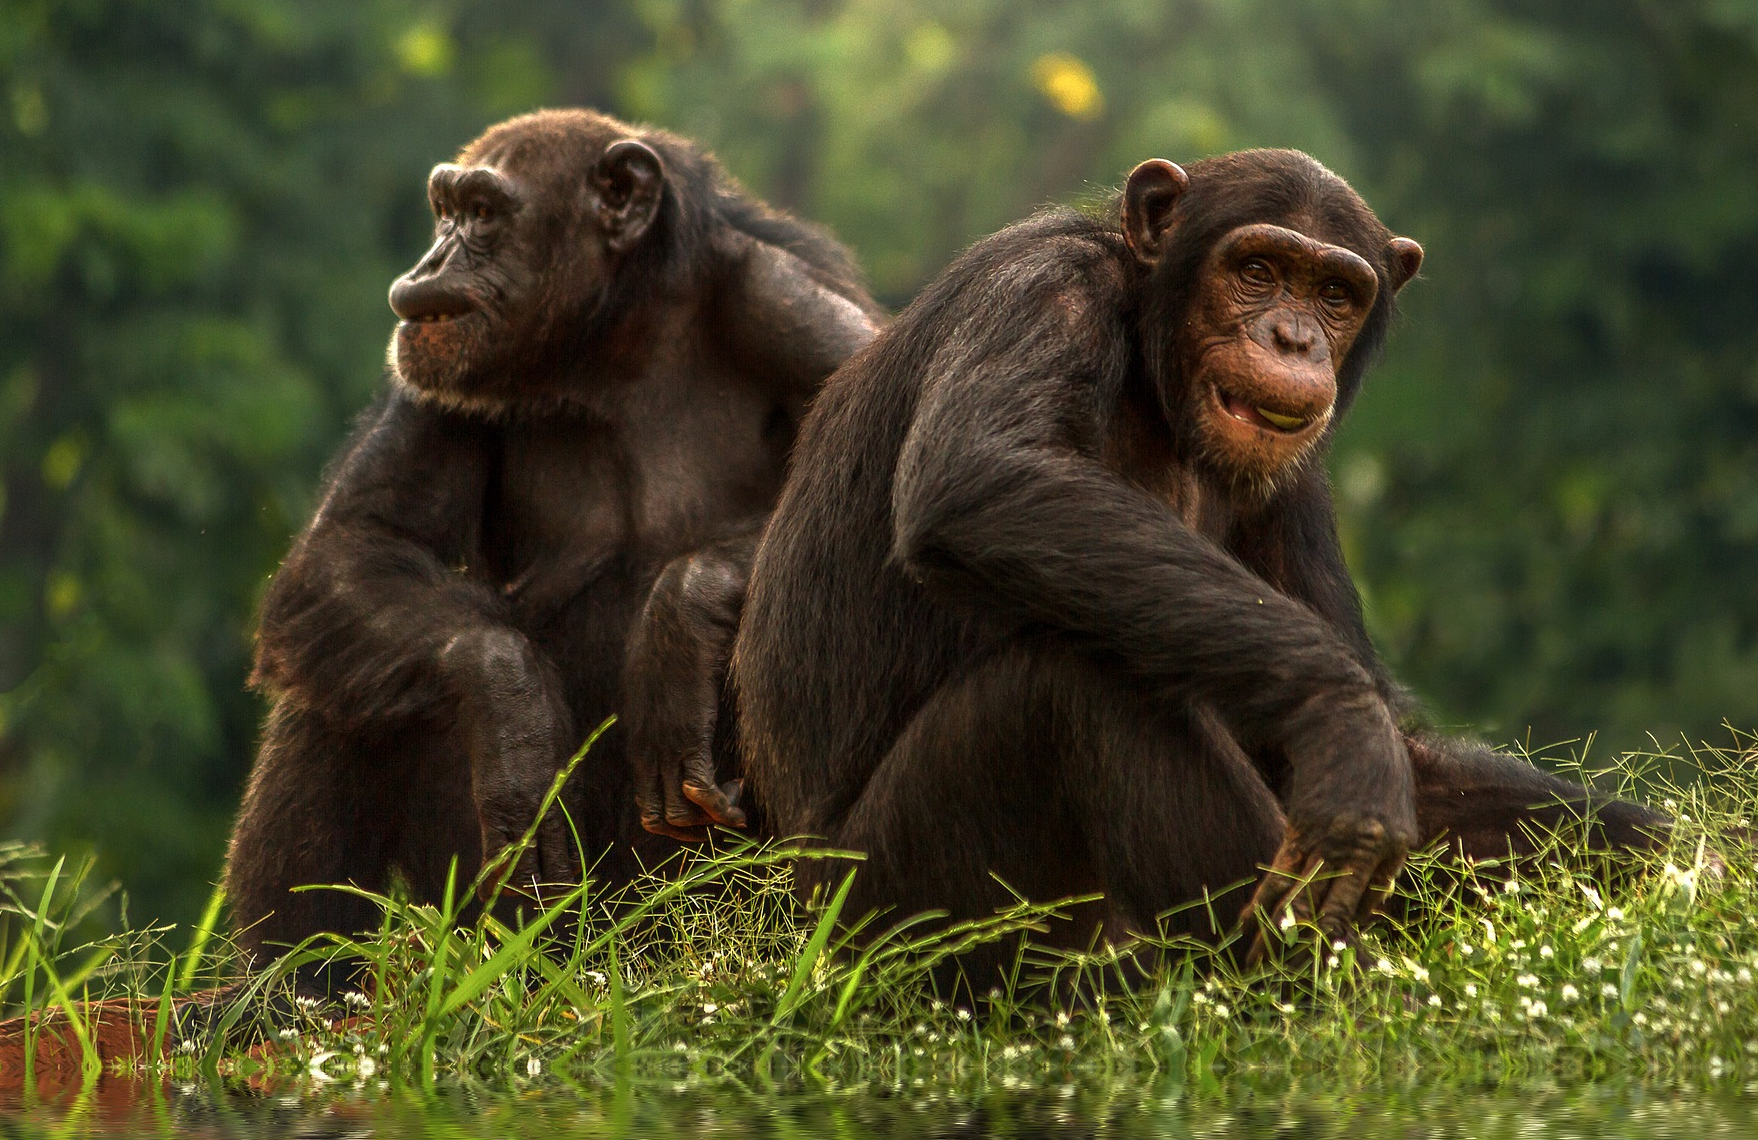 Sex Roles Are Flexible in Chimpanzees and Bonobos. What Does That Say About Human Evolution?